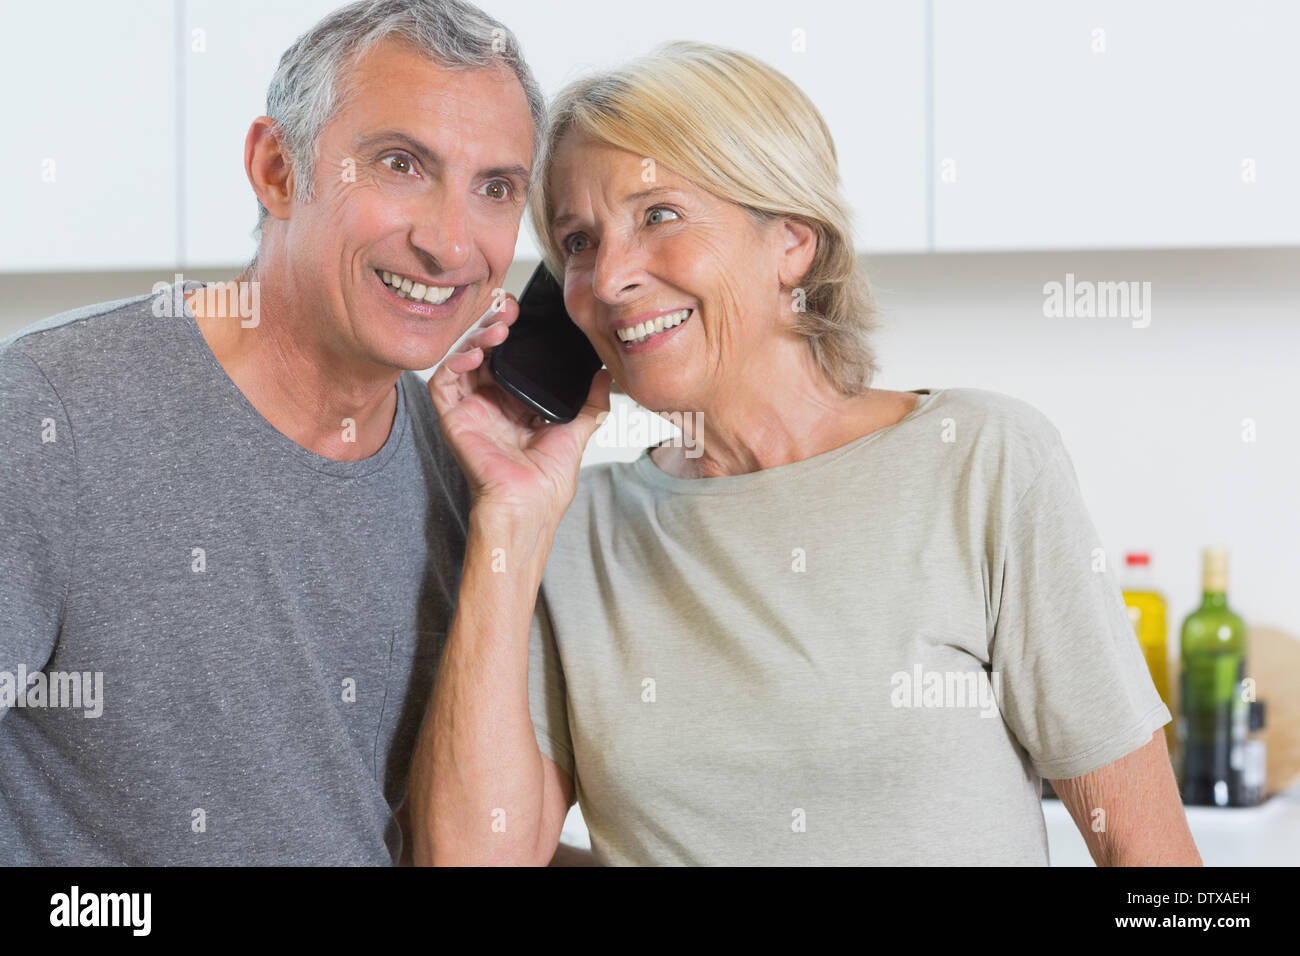 Couple taking a call together - Stock Image